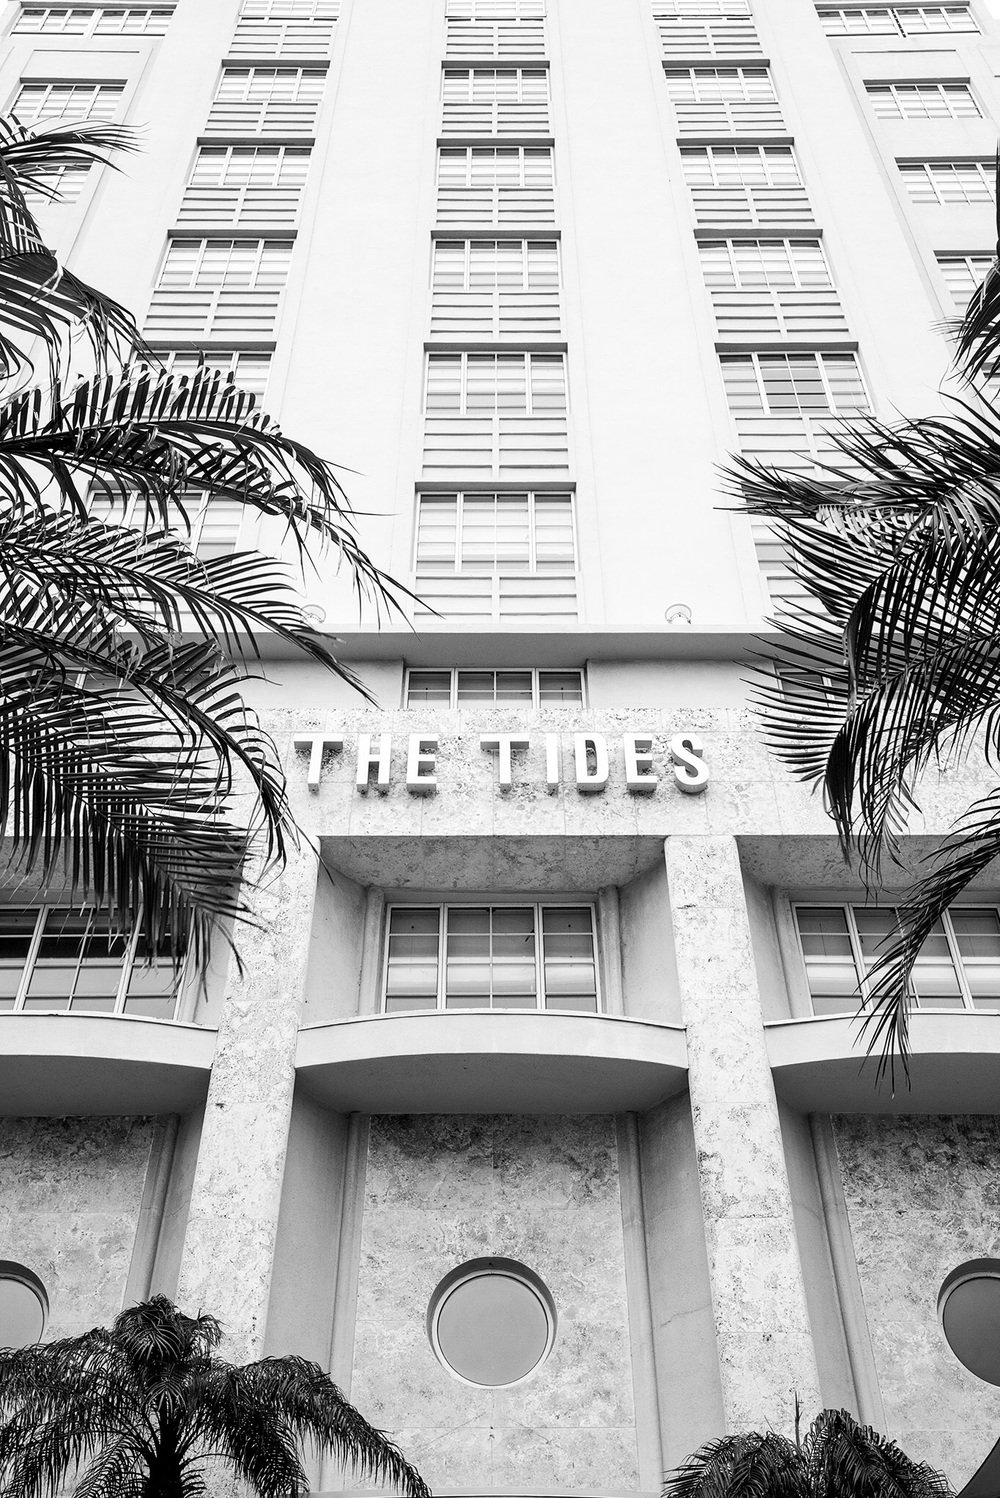 The Tides hotel also has port hole details.